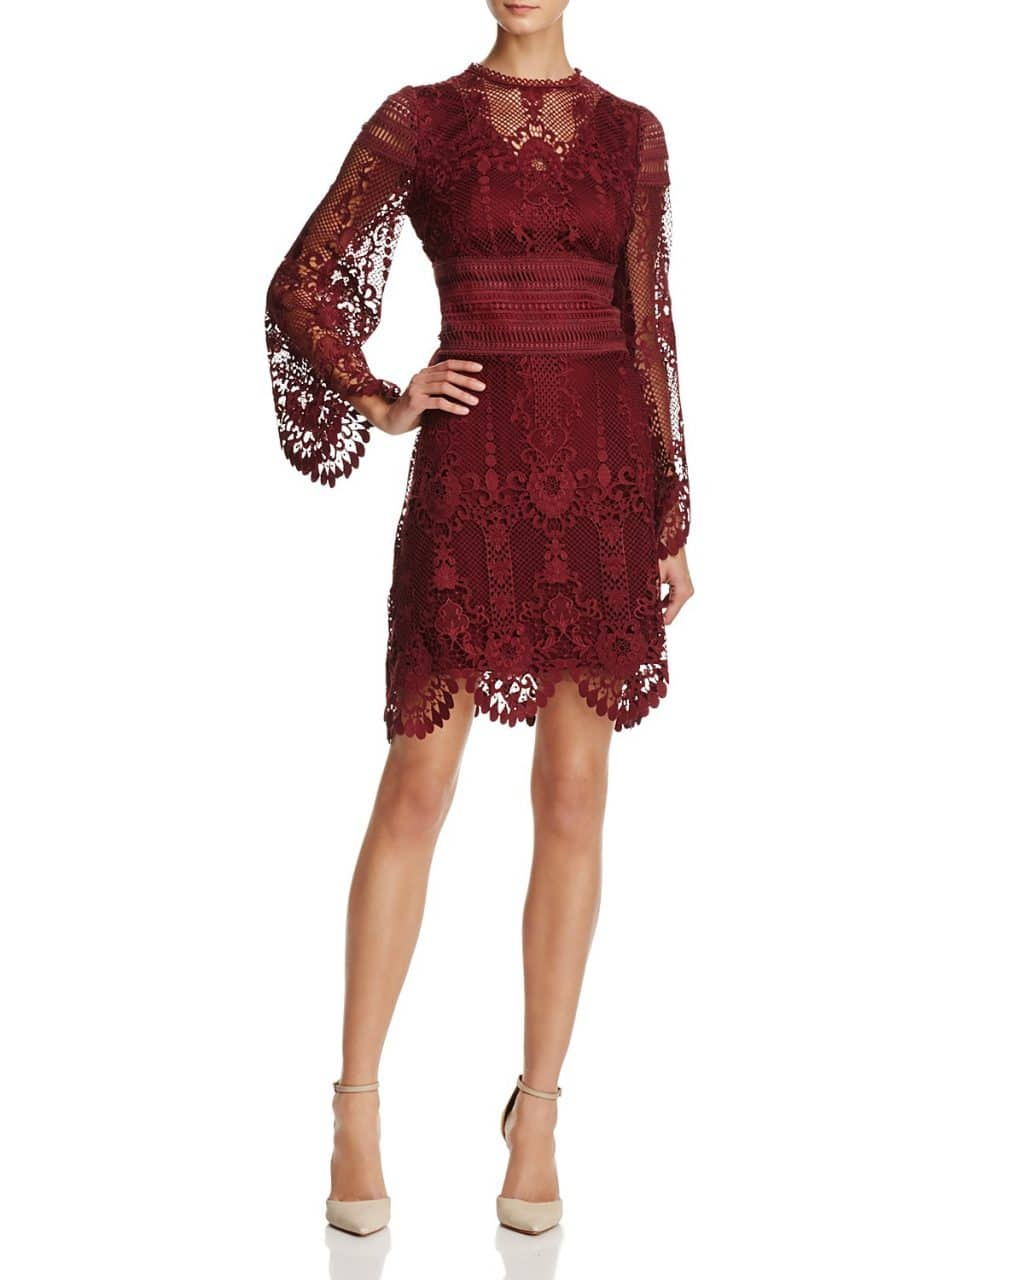 LAUNDRY BY SHELLI SEGAL Long-Sleeve Lace Deep Garnet Dress